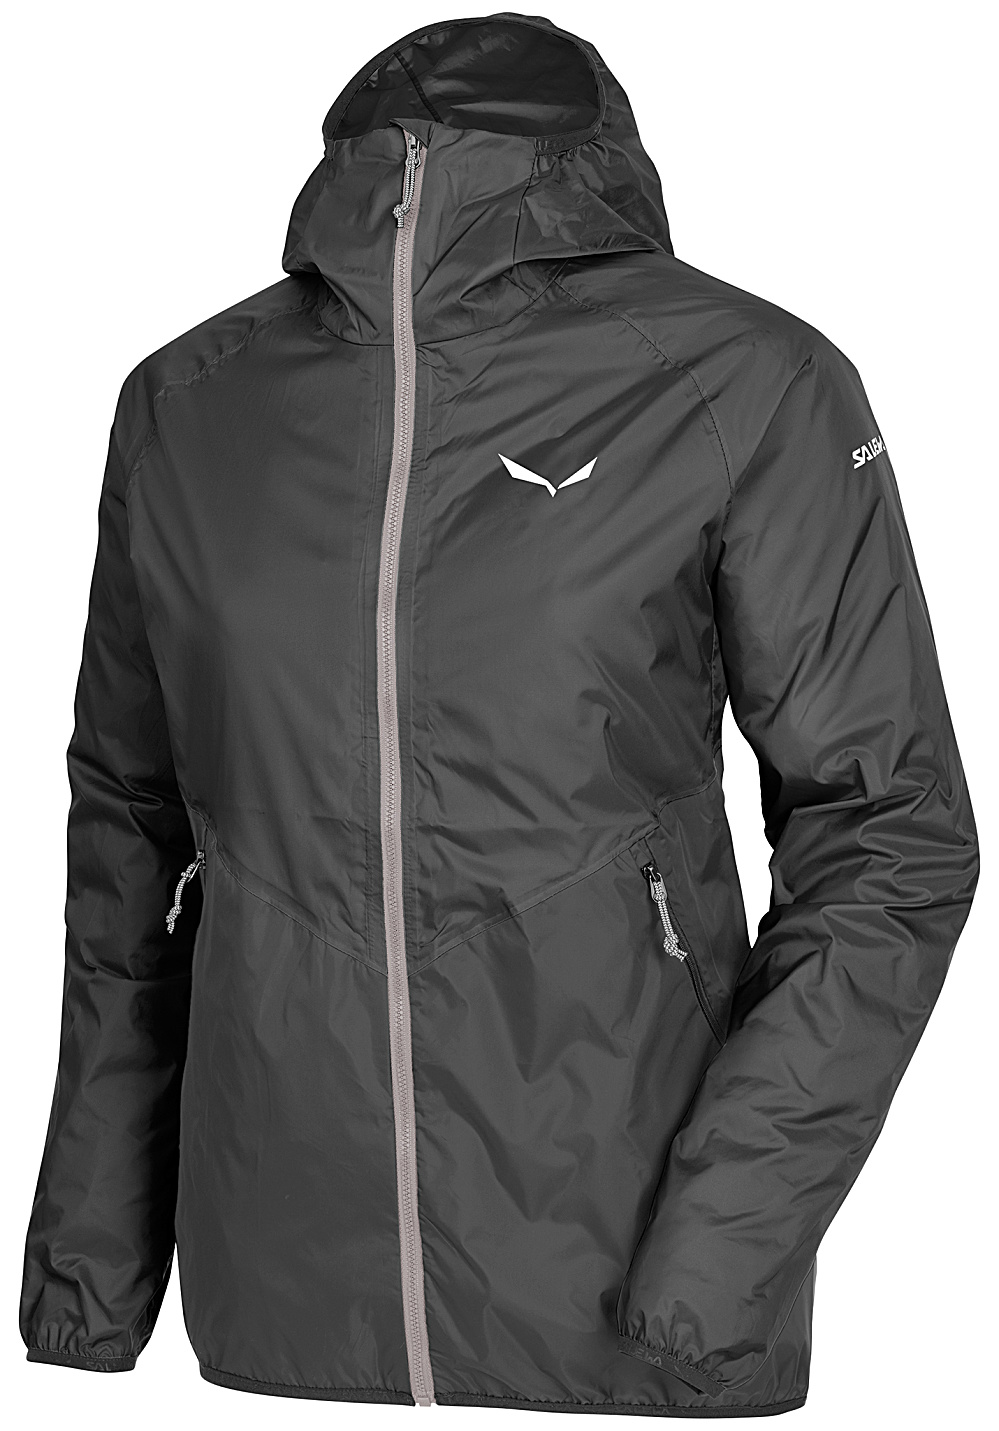 new product 1a6ae 9be16 SALEWA Puez Rtc - Functional Jacket for Women - Black